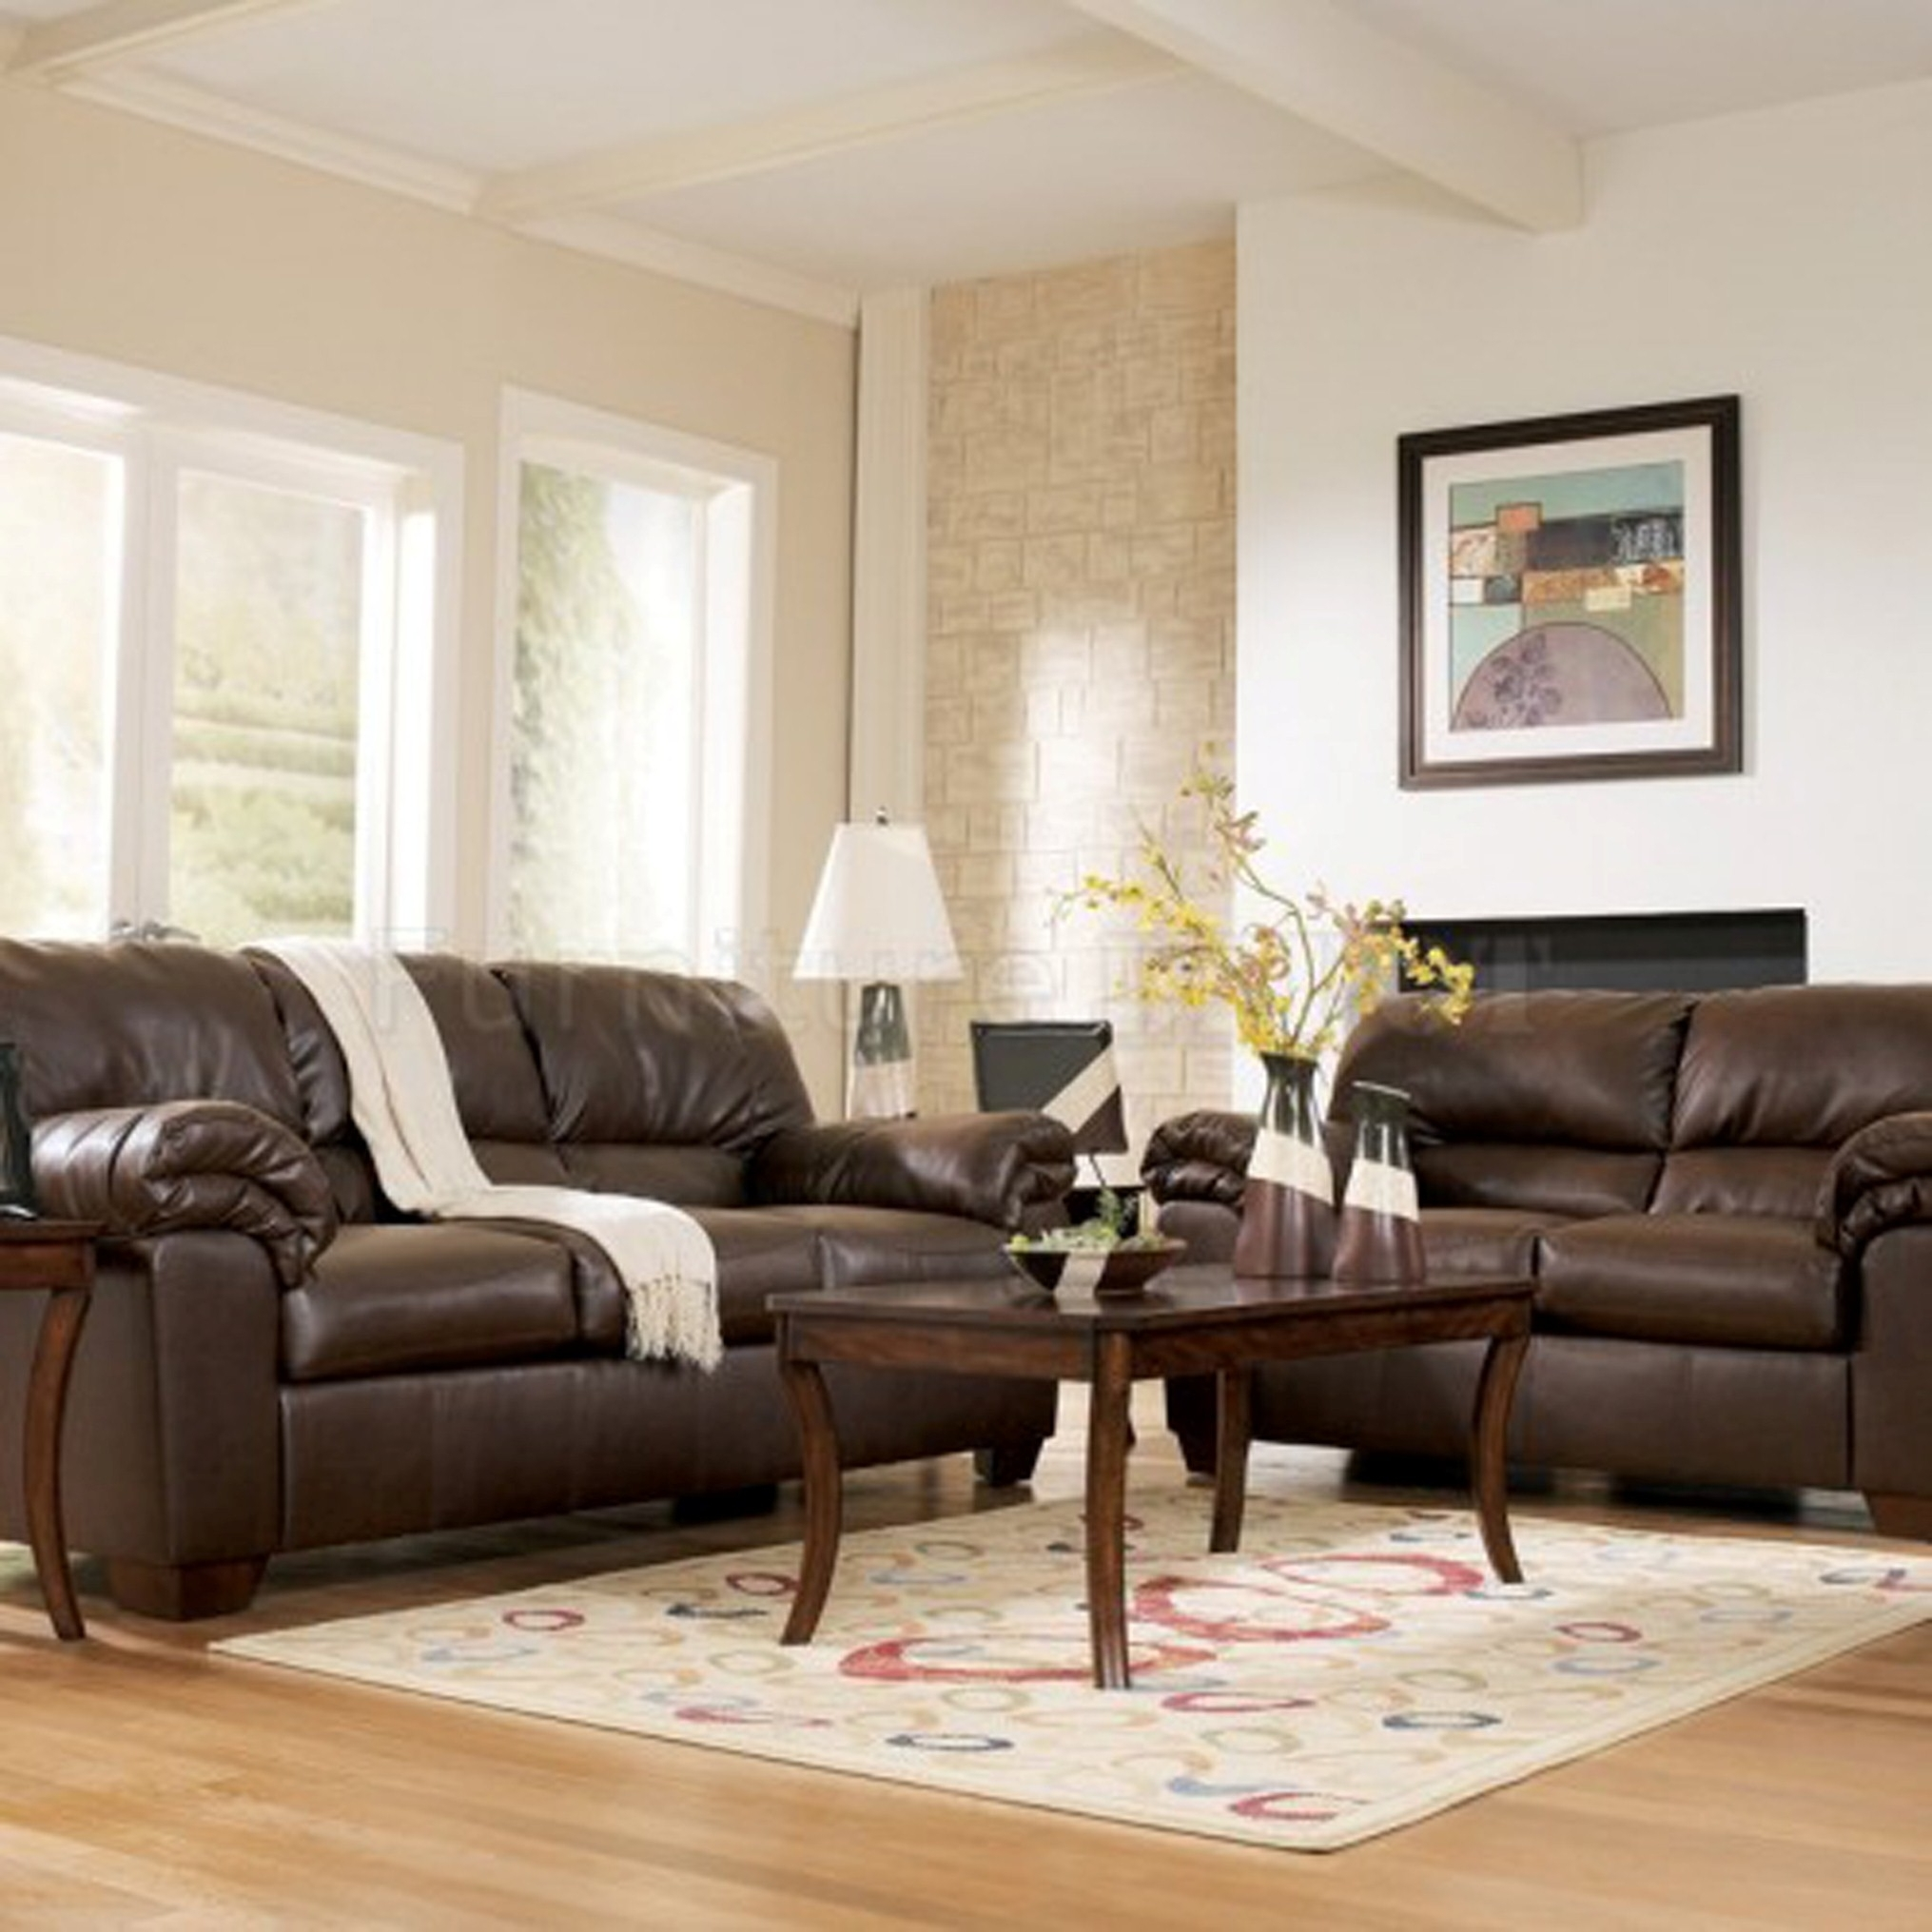 Living room ideas brown leather sofa for Modern living room brown